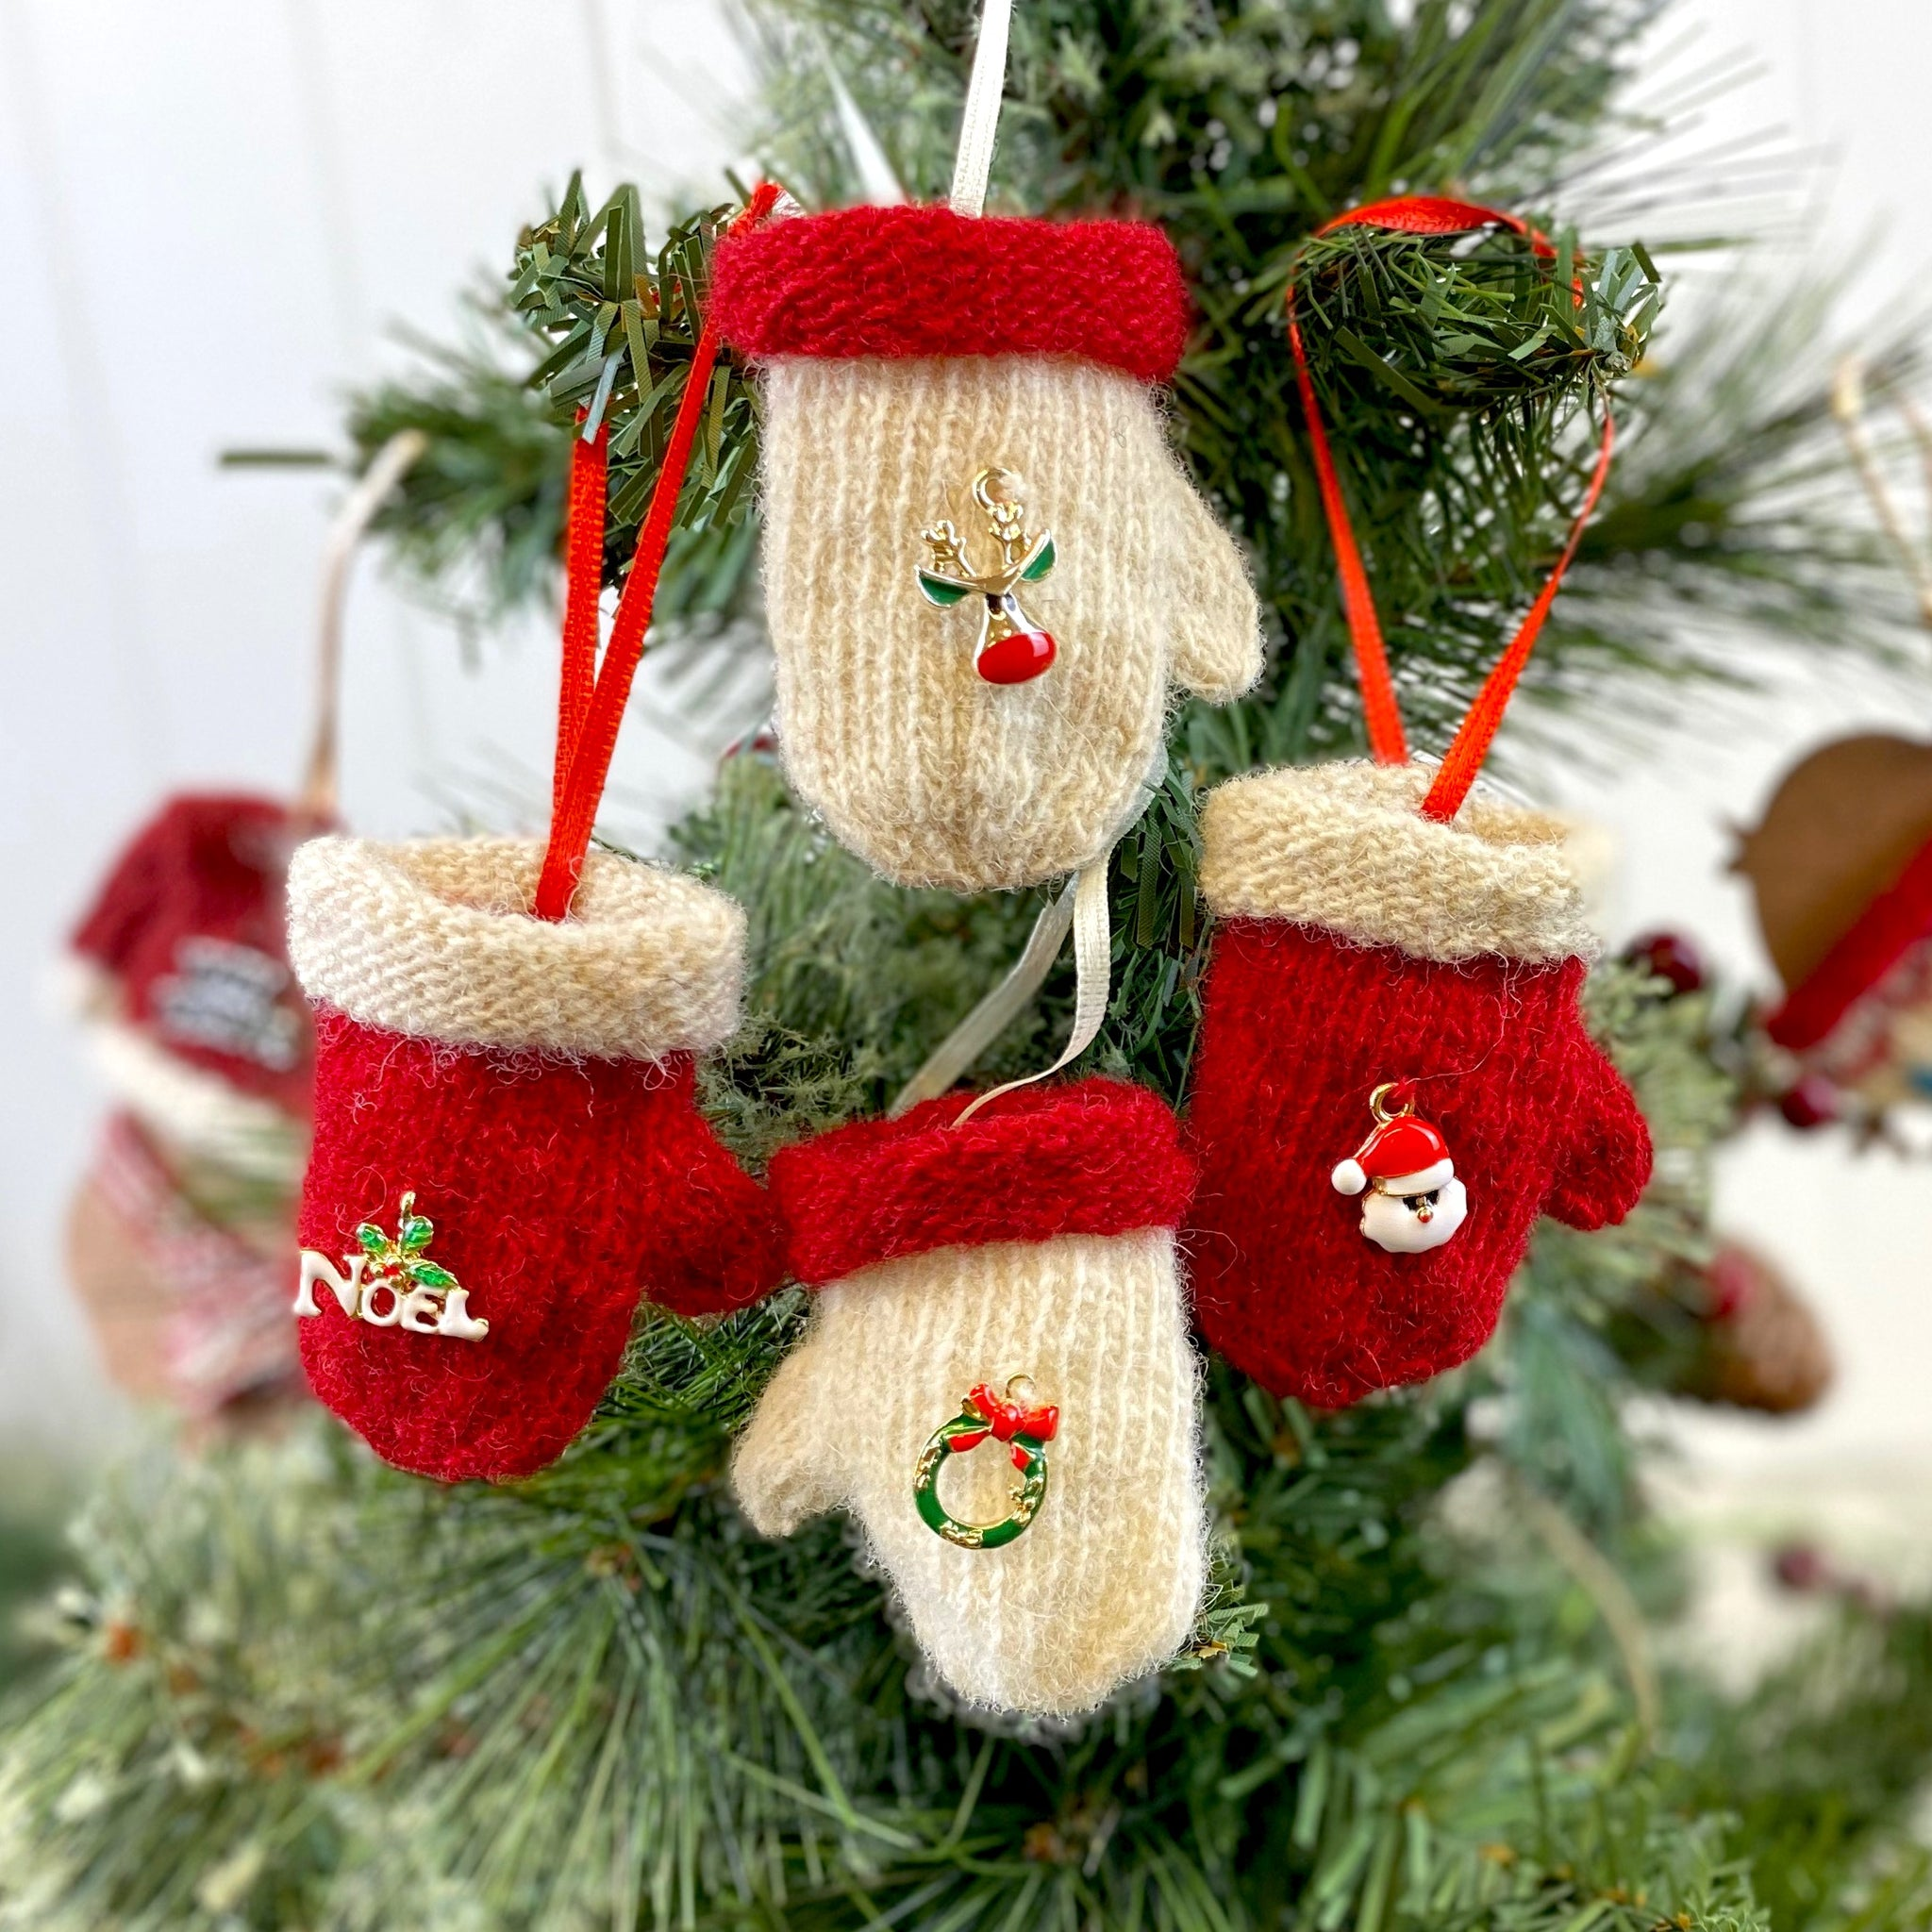 Mini Christmas Mittens Decoration Knitting Kit